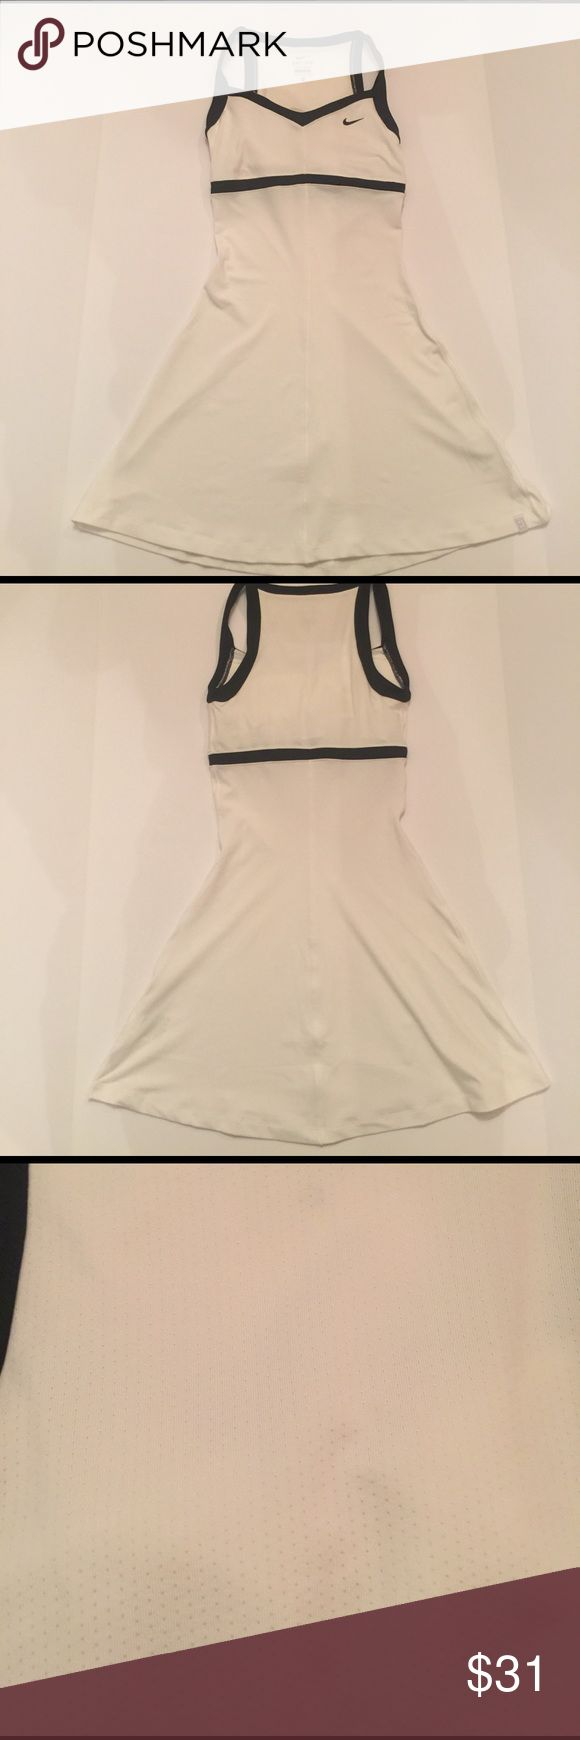 "Nike Dri Fit Tennis Dress 🎾 Never worn size xsmall made of 92% polyester and 8% spandex. Bust padding and mesh back. It measures approximately approximately 13"" flat underarm to underarm and measures approximately 31"" long from back of neckline to hem Nike Dresses"